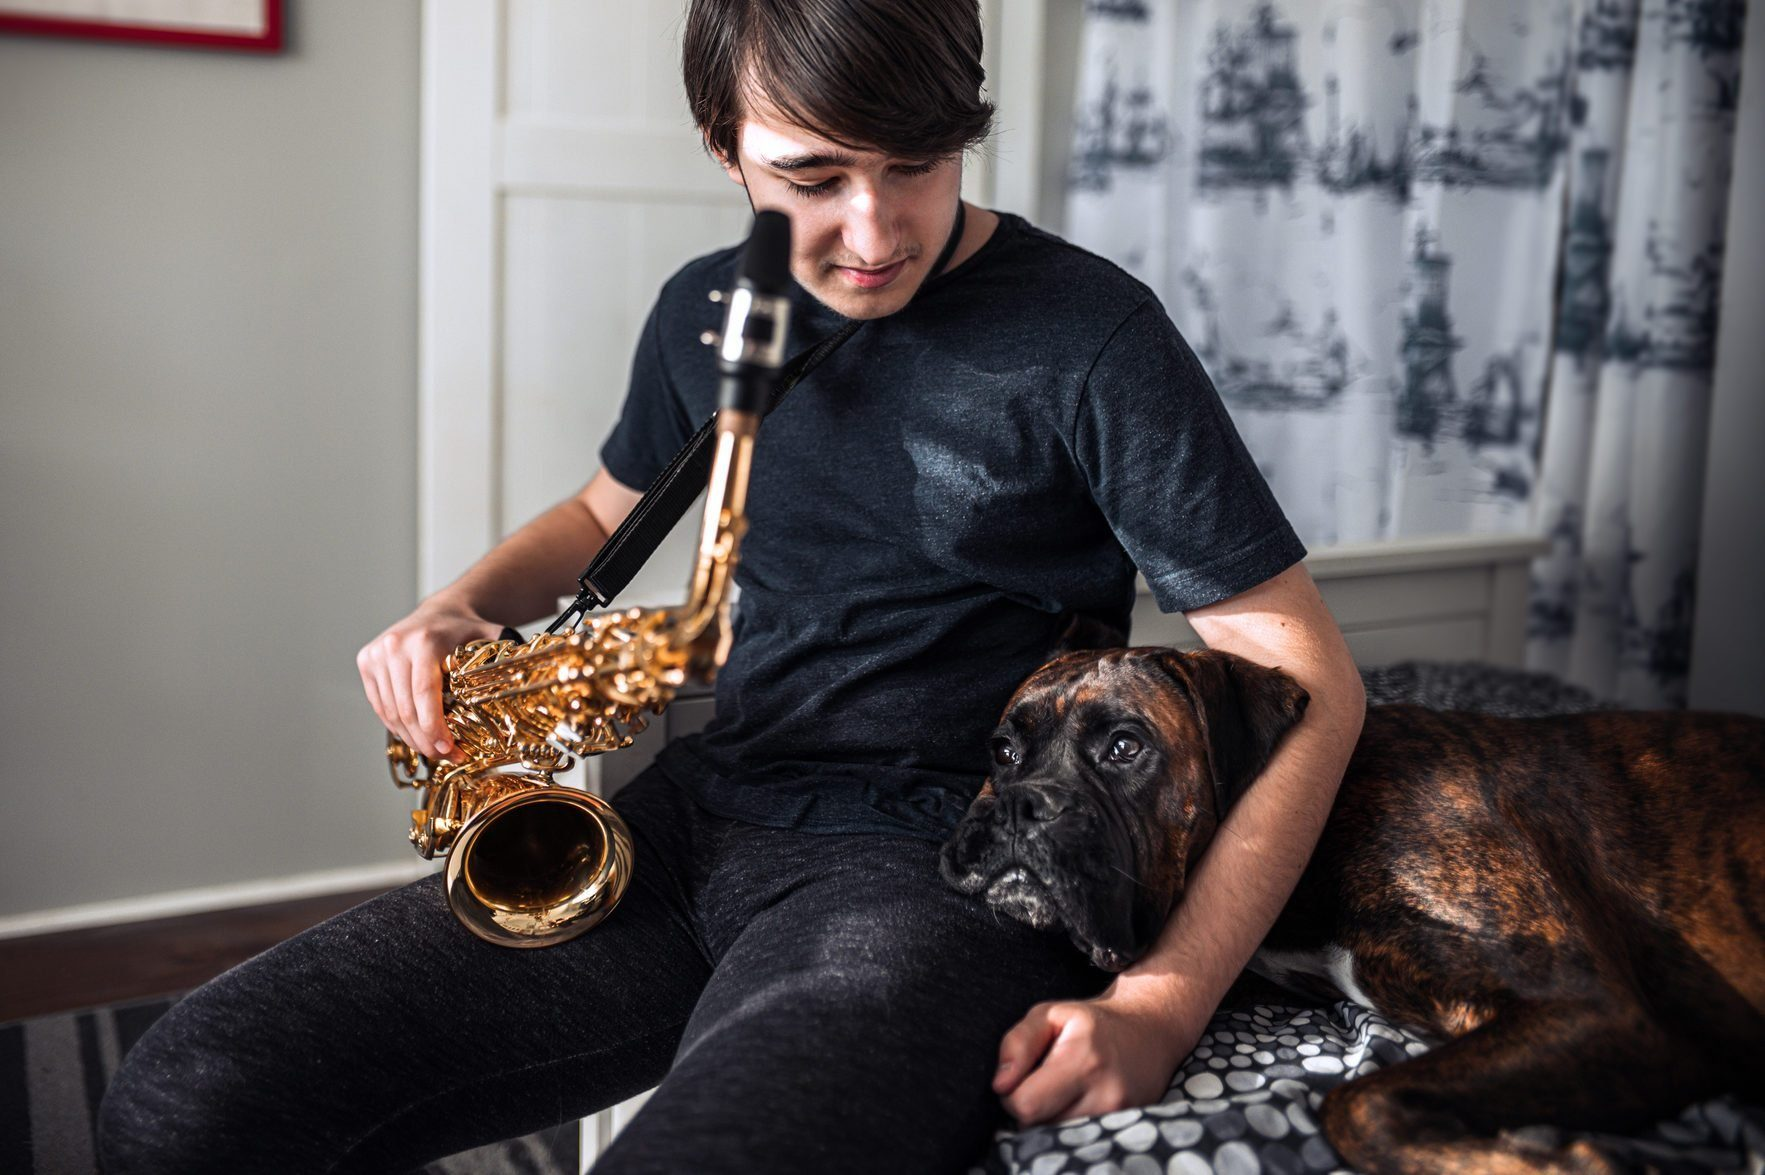 Most affectionate dog breeds - Teenager playing sax in his room